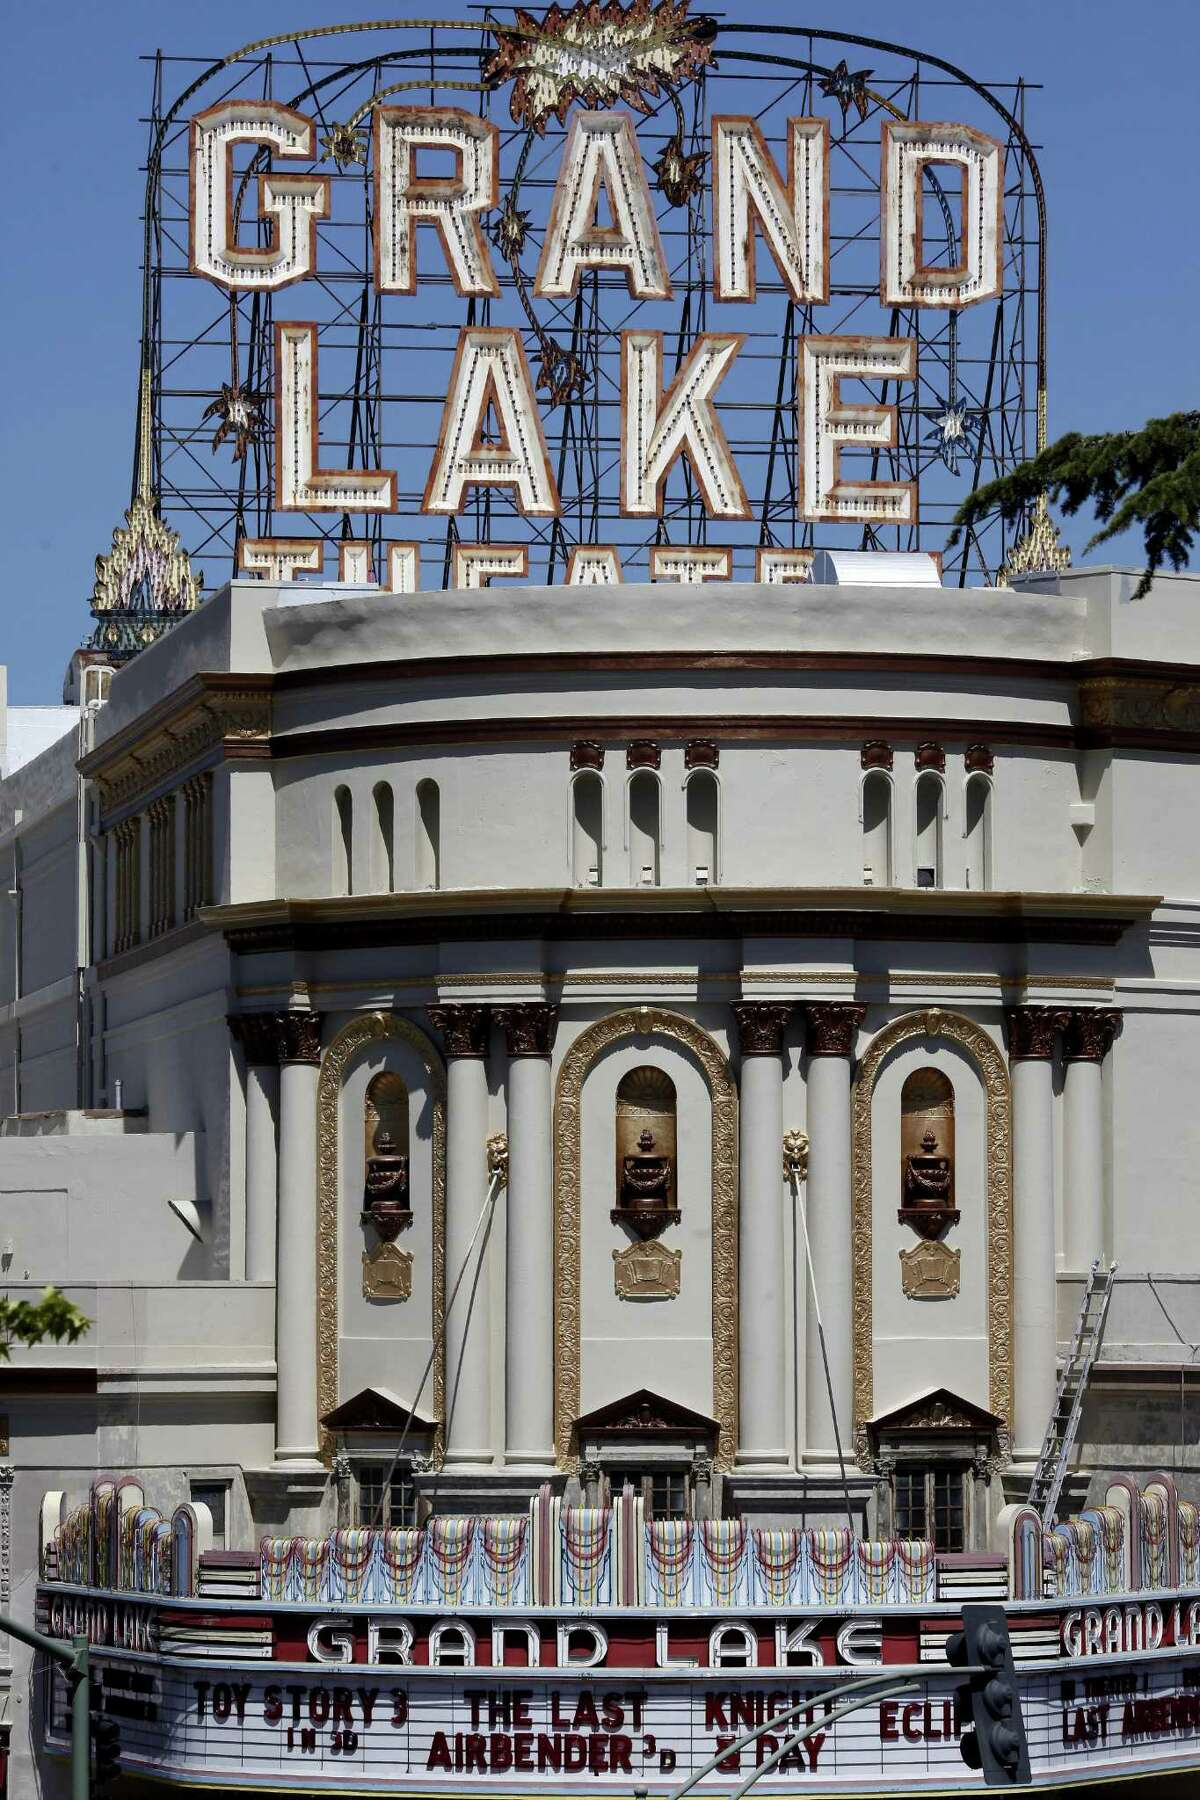 The Grand Lake Theatre is the last theater run by Allen Michaan, who used to have more than a dozen theaters in the Bay Area.